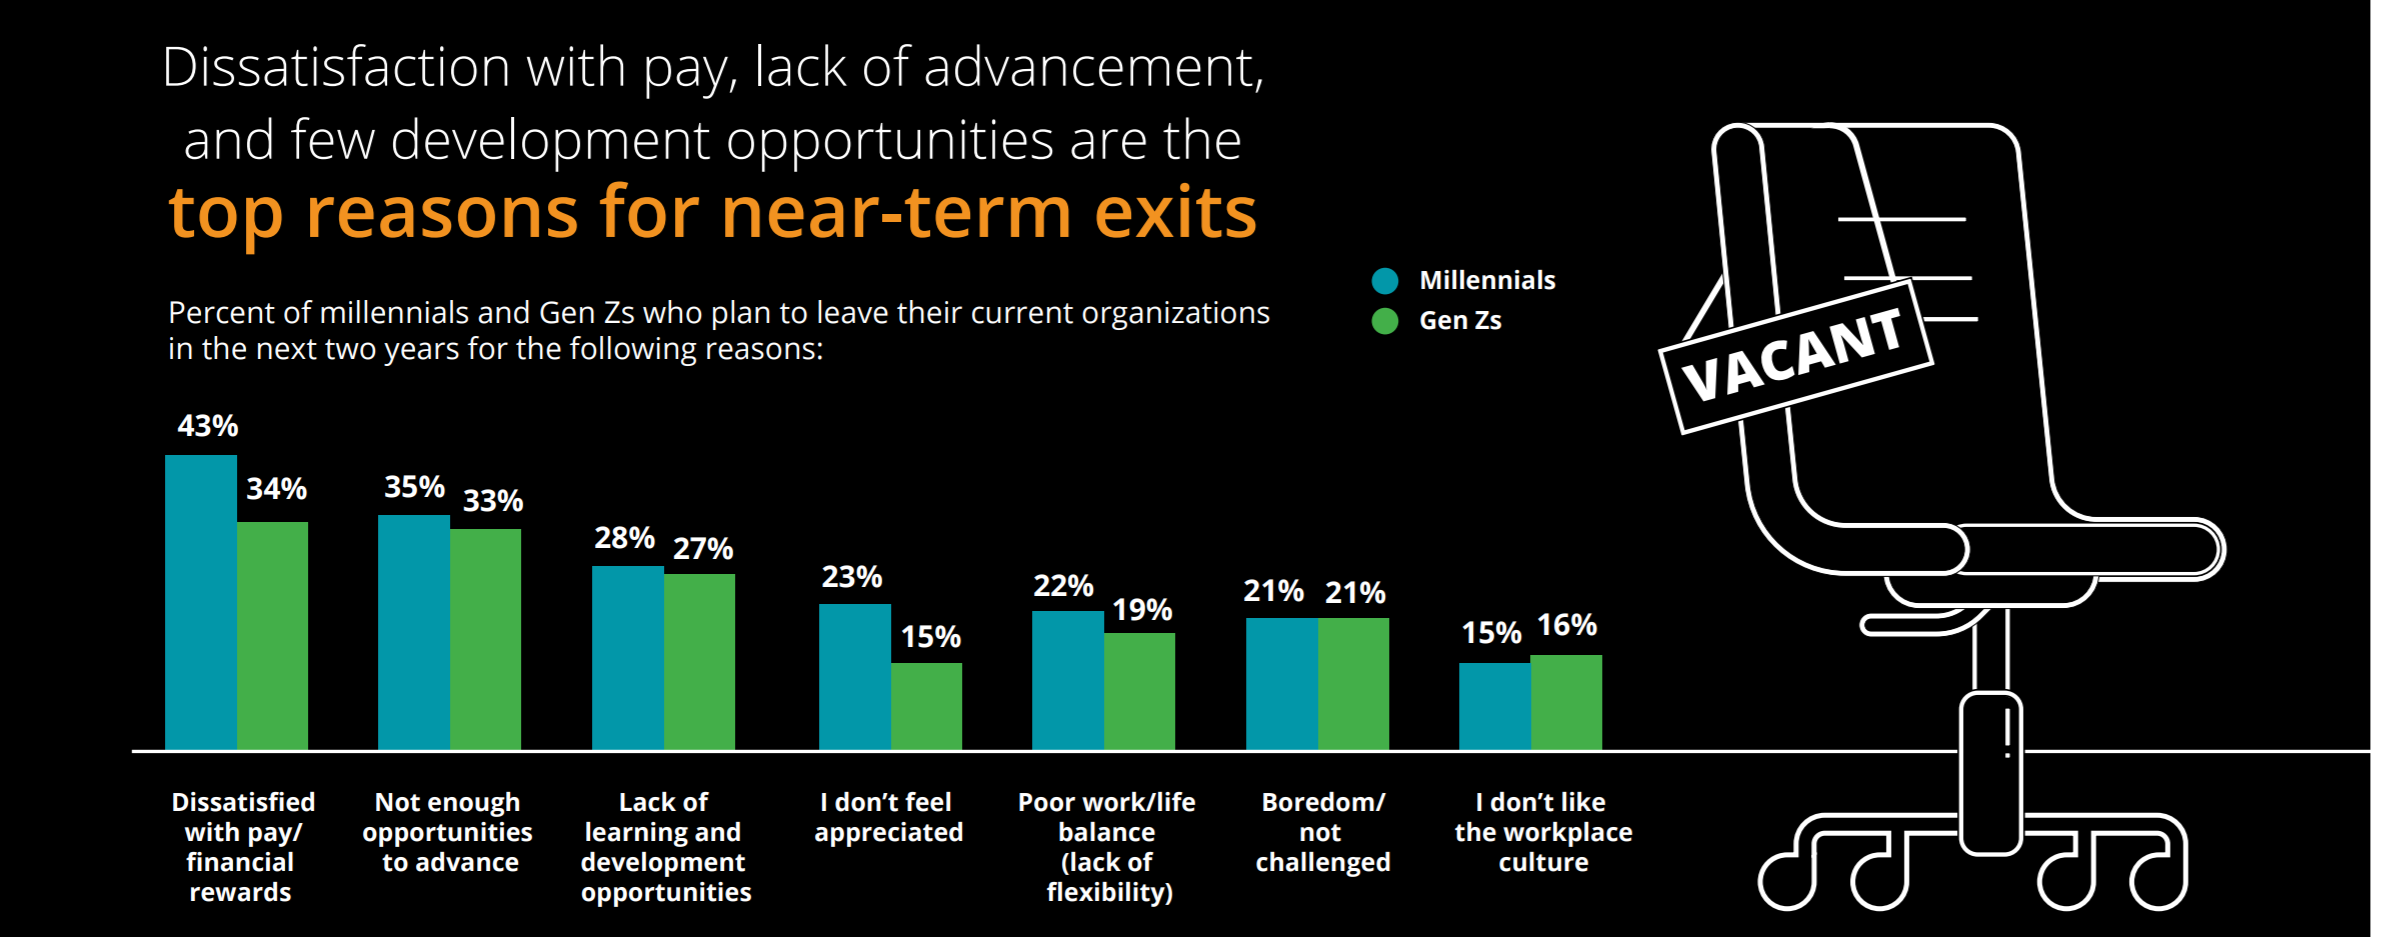 Graph of top reasons for near-term exits